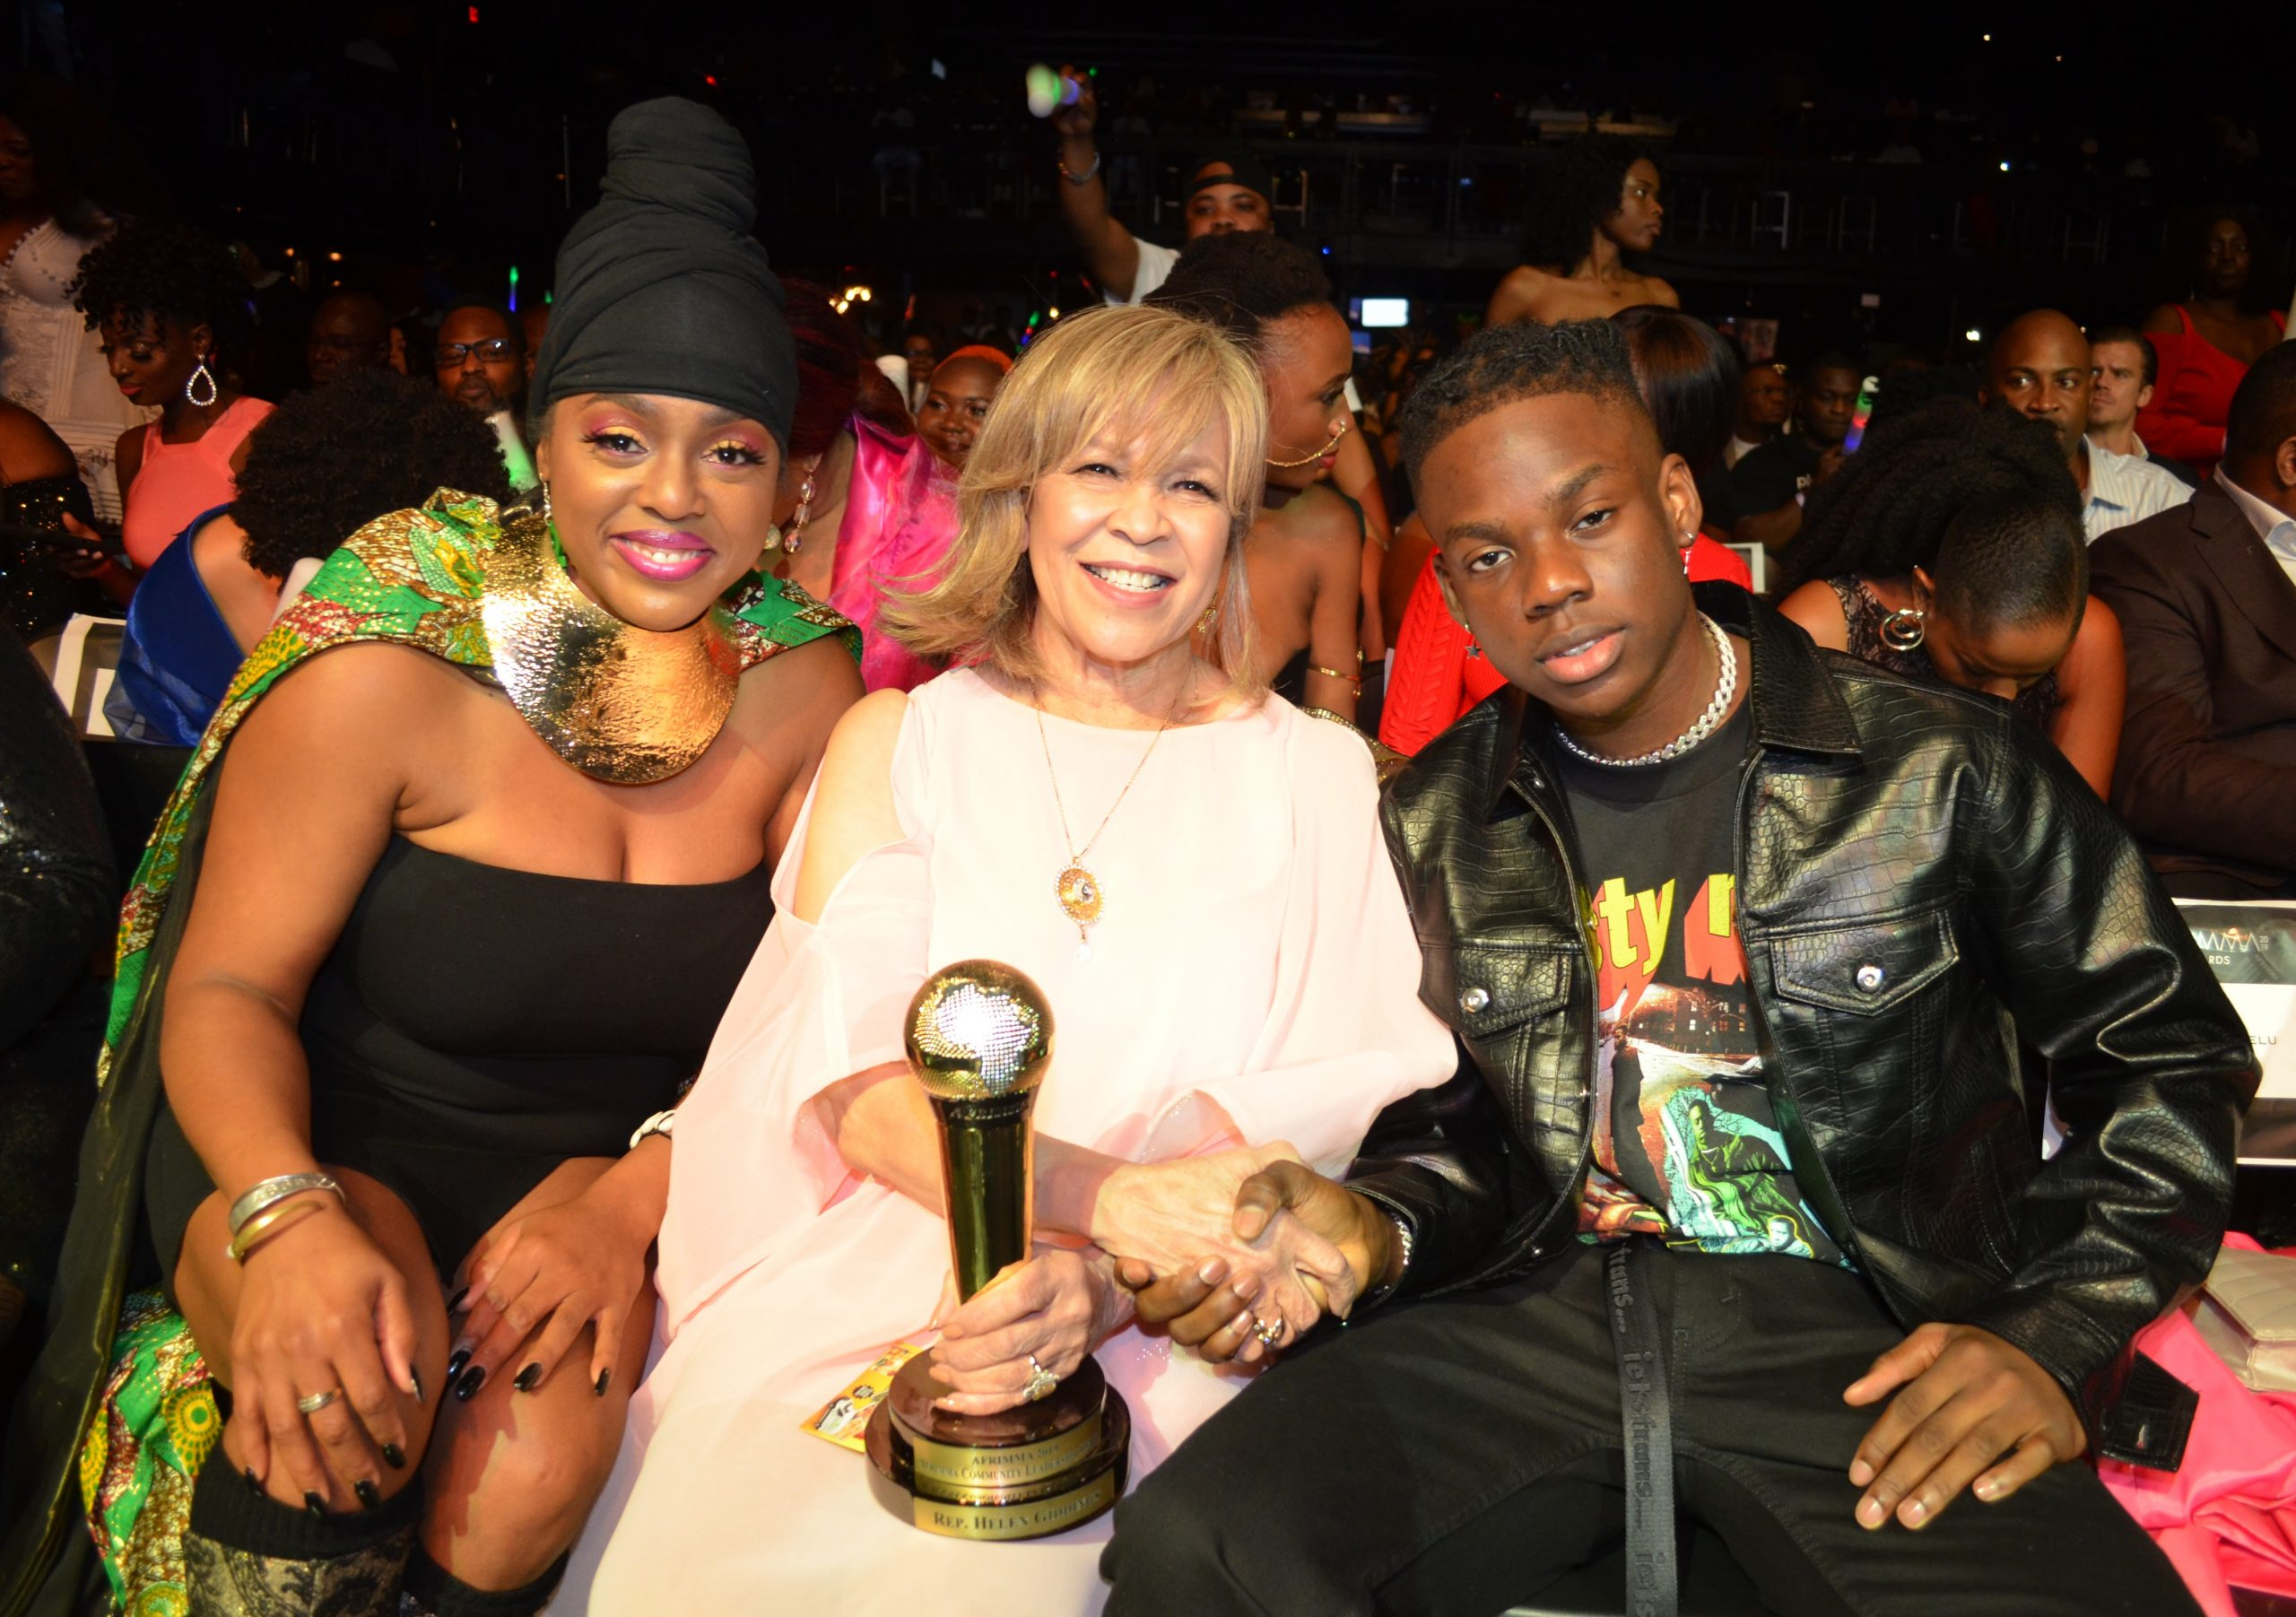 Ms. Helen Giddings (sitting) Left to Right: Queen Cora Coleman (Drummer for Prince and Beyoncé); Helen Giddings (Former member Texas House of Representatives for 26 years); and Rema (19-year-old Nigerian Singer and Rapper, who won AFRIMMA's Video of the Year Award). Photo Credits: Earnestine Cole